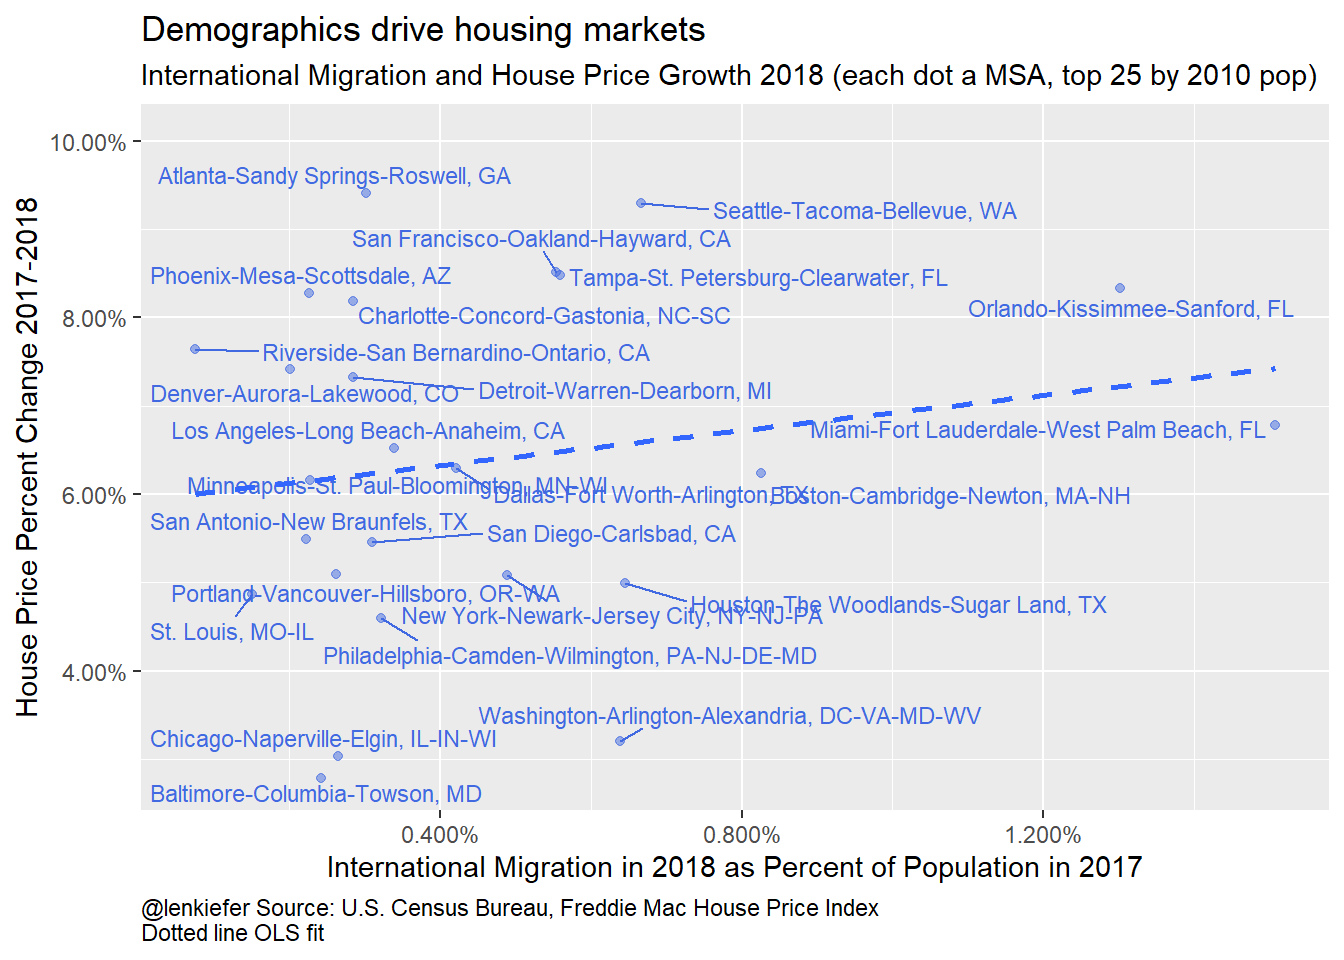 International Migration and House Price Growth 2018